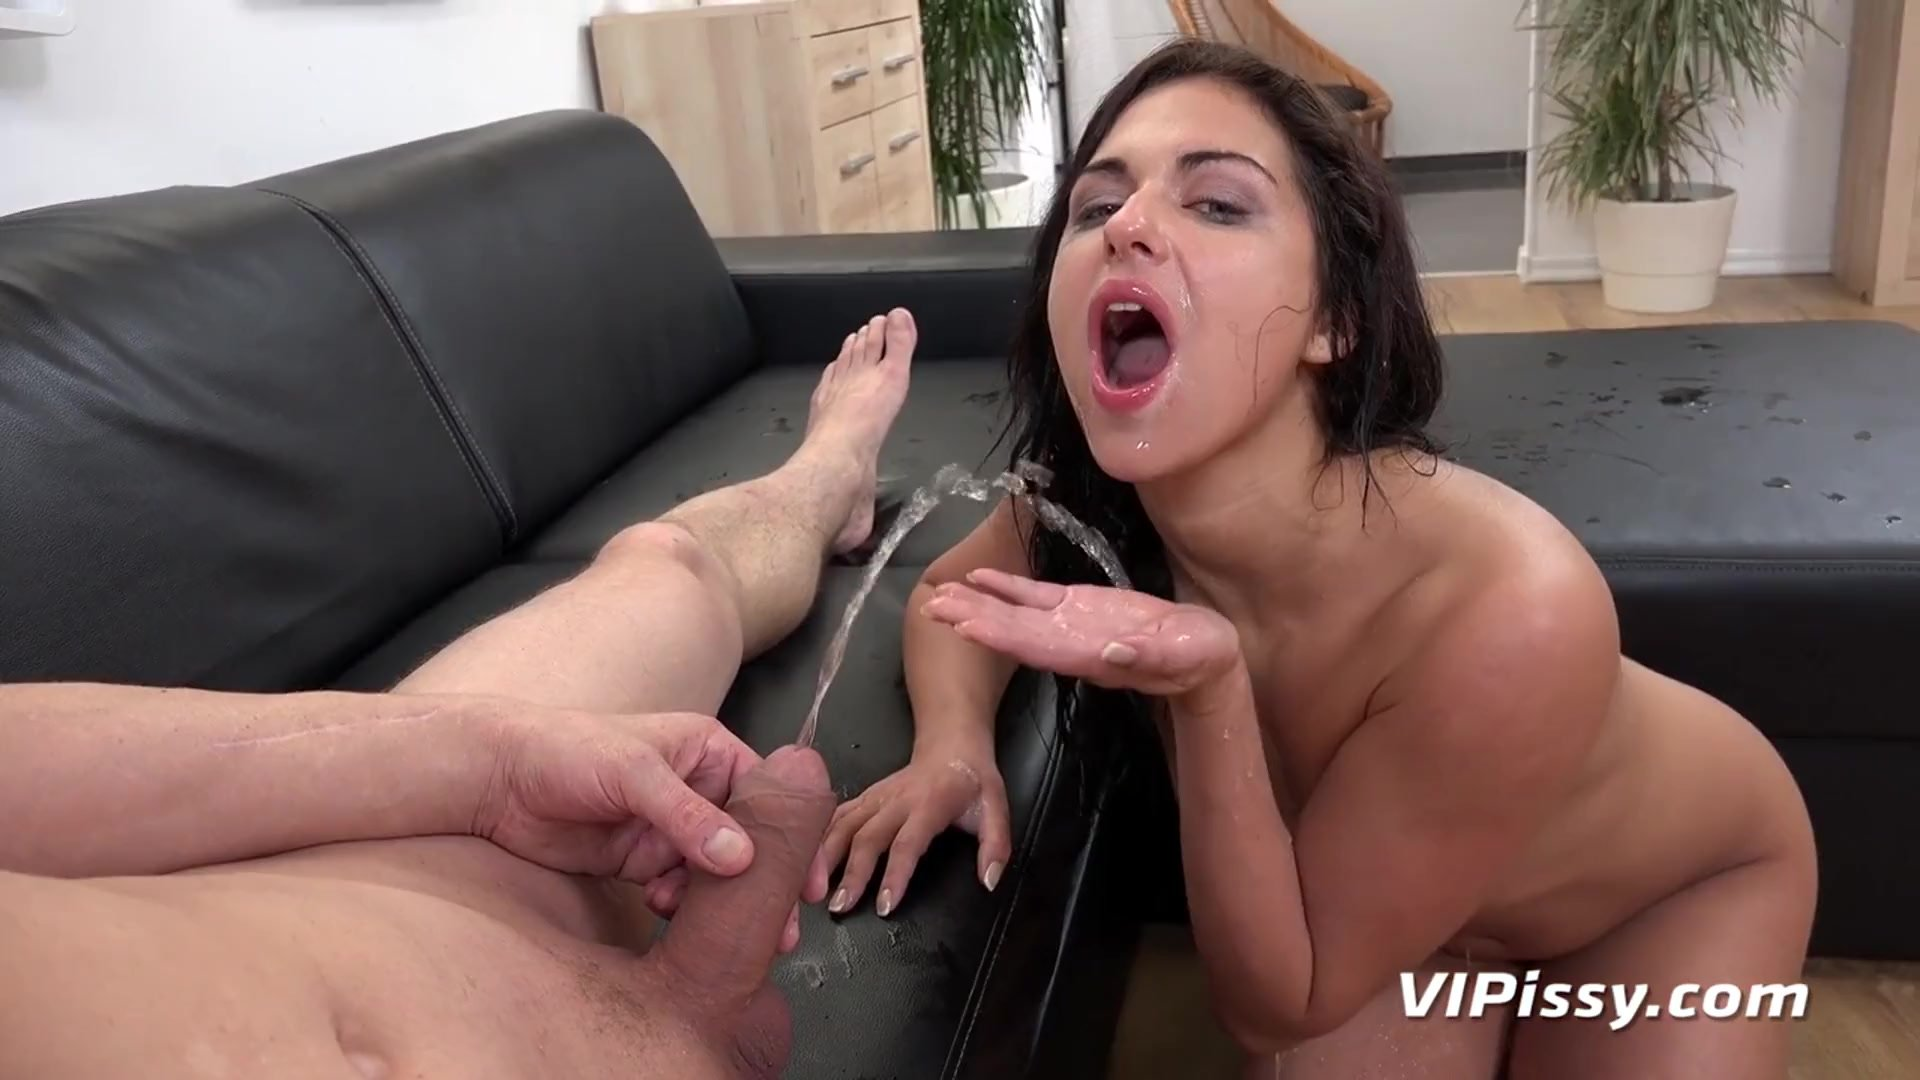 Vipissy - Jessica Lincoln gets drenched in this pissing porn video